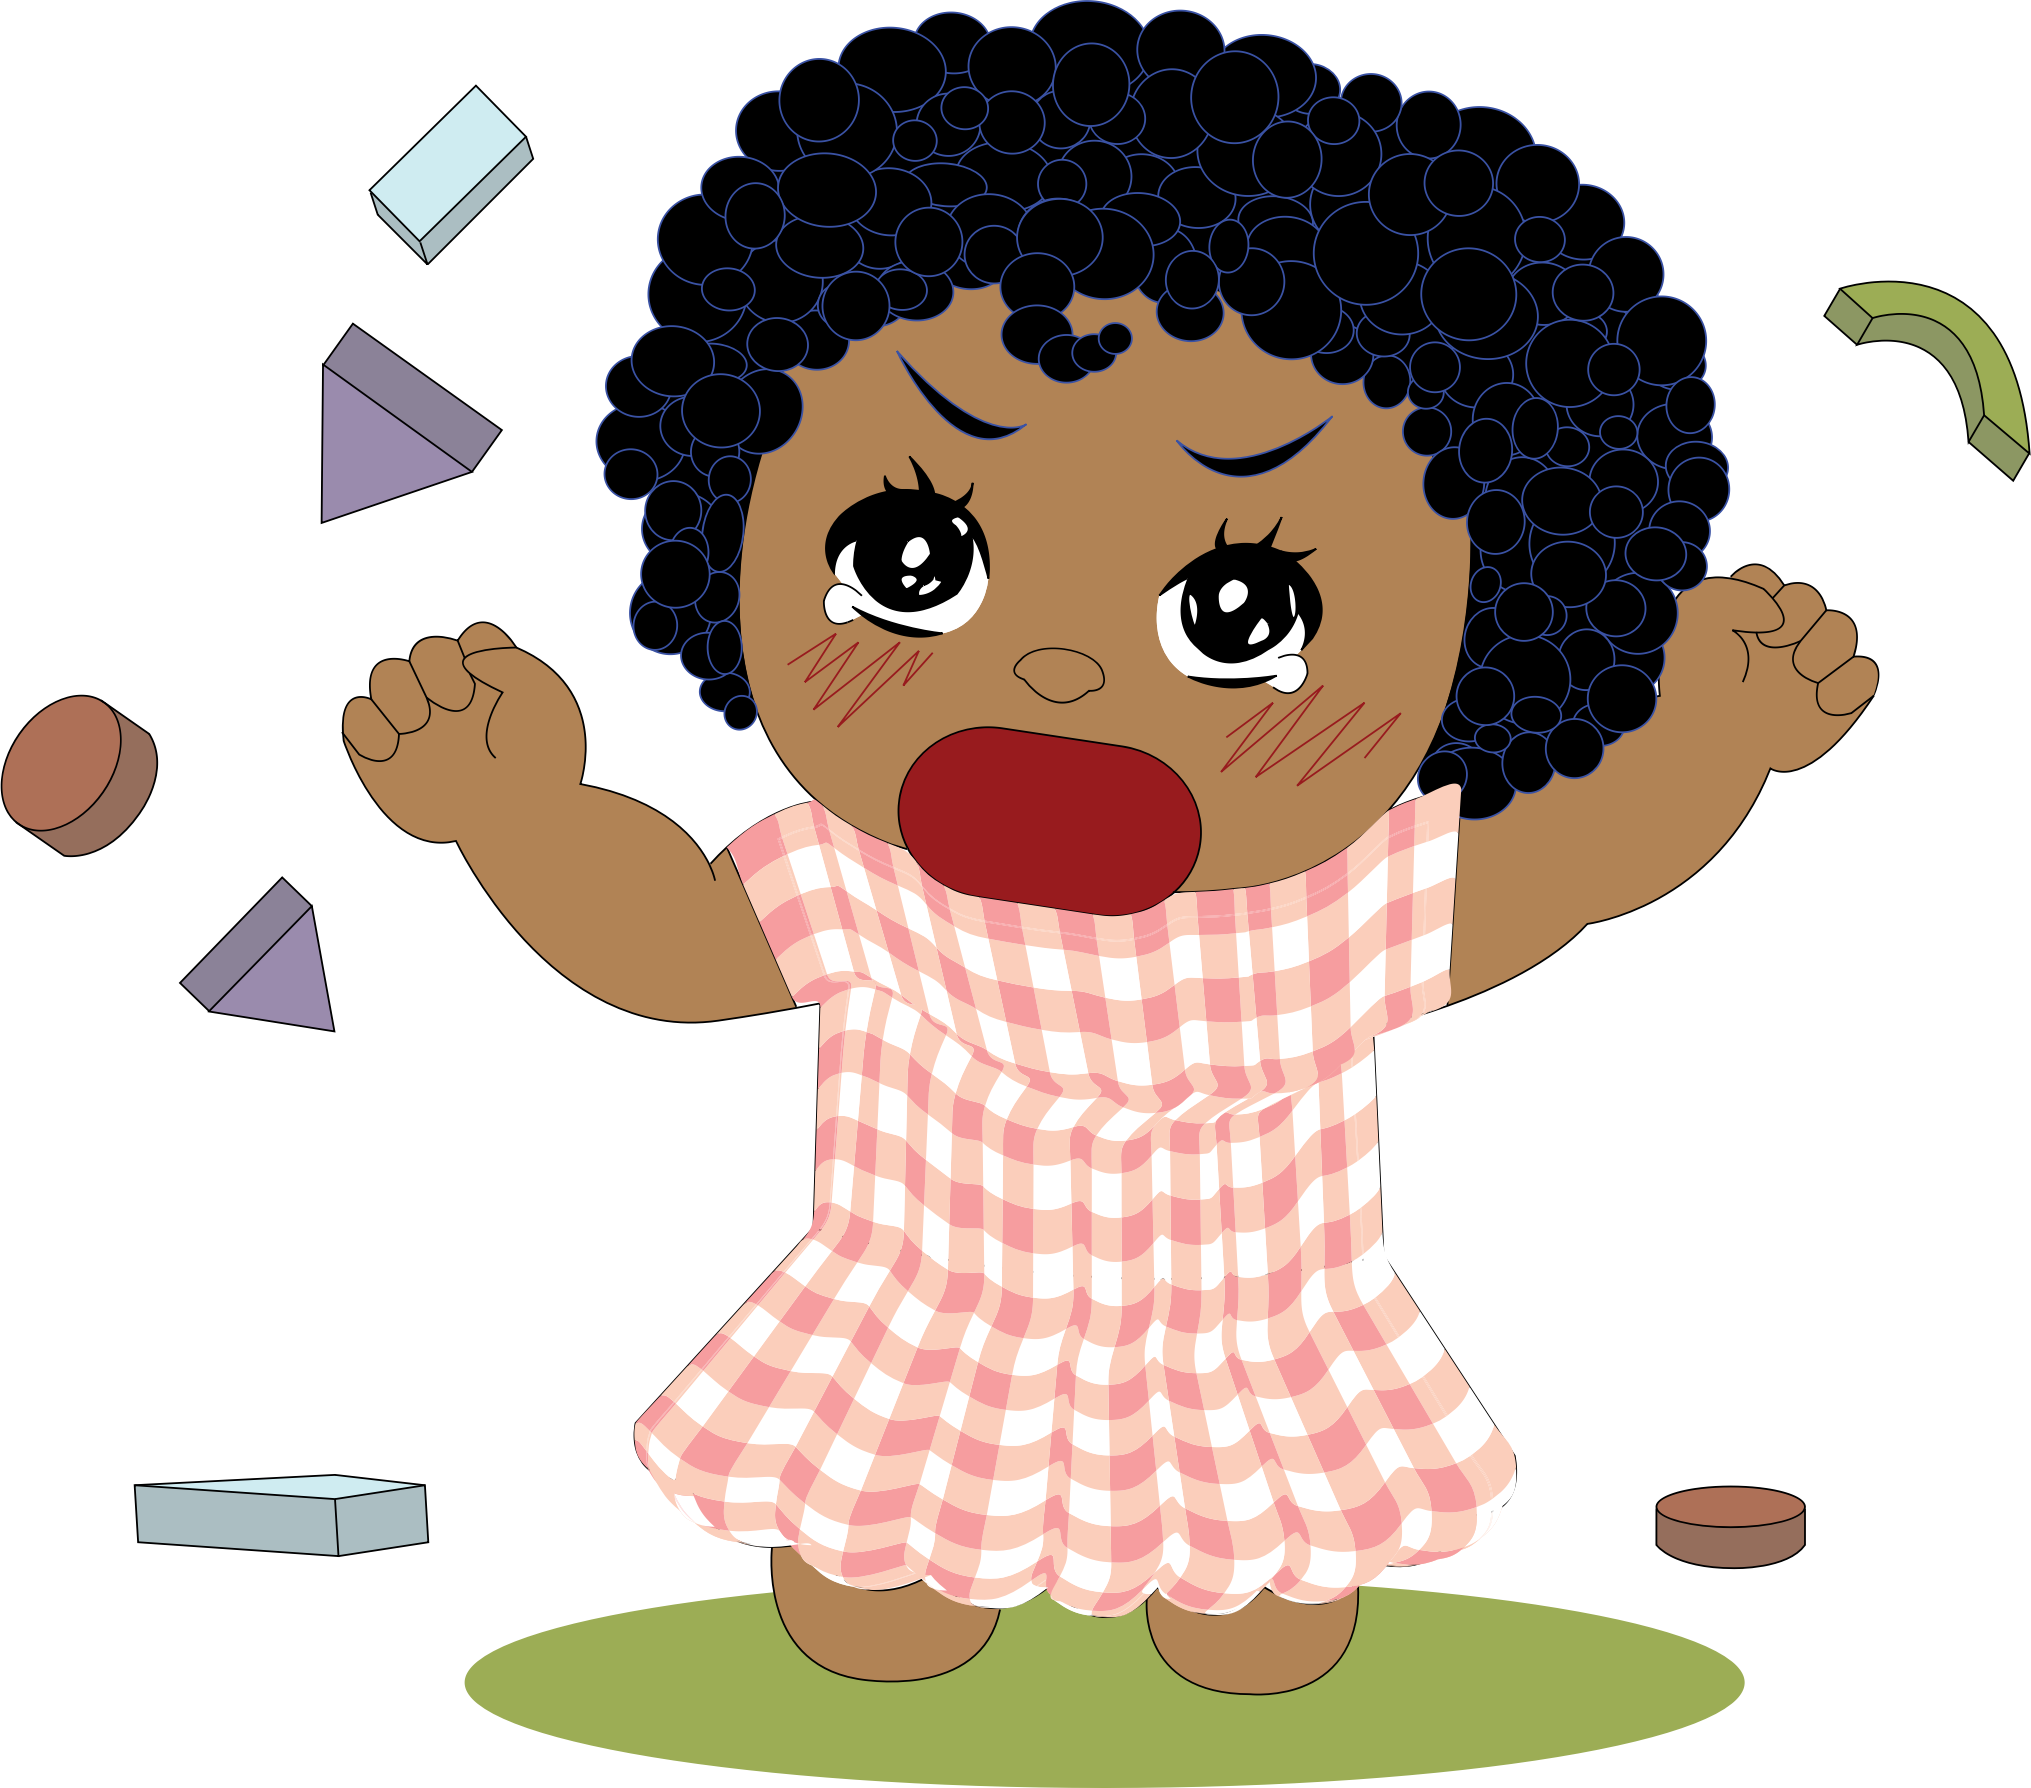 Little girl big image. Cry clipart tantrum